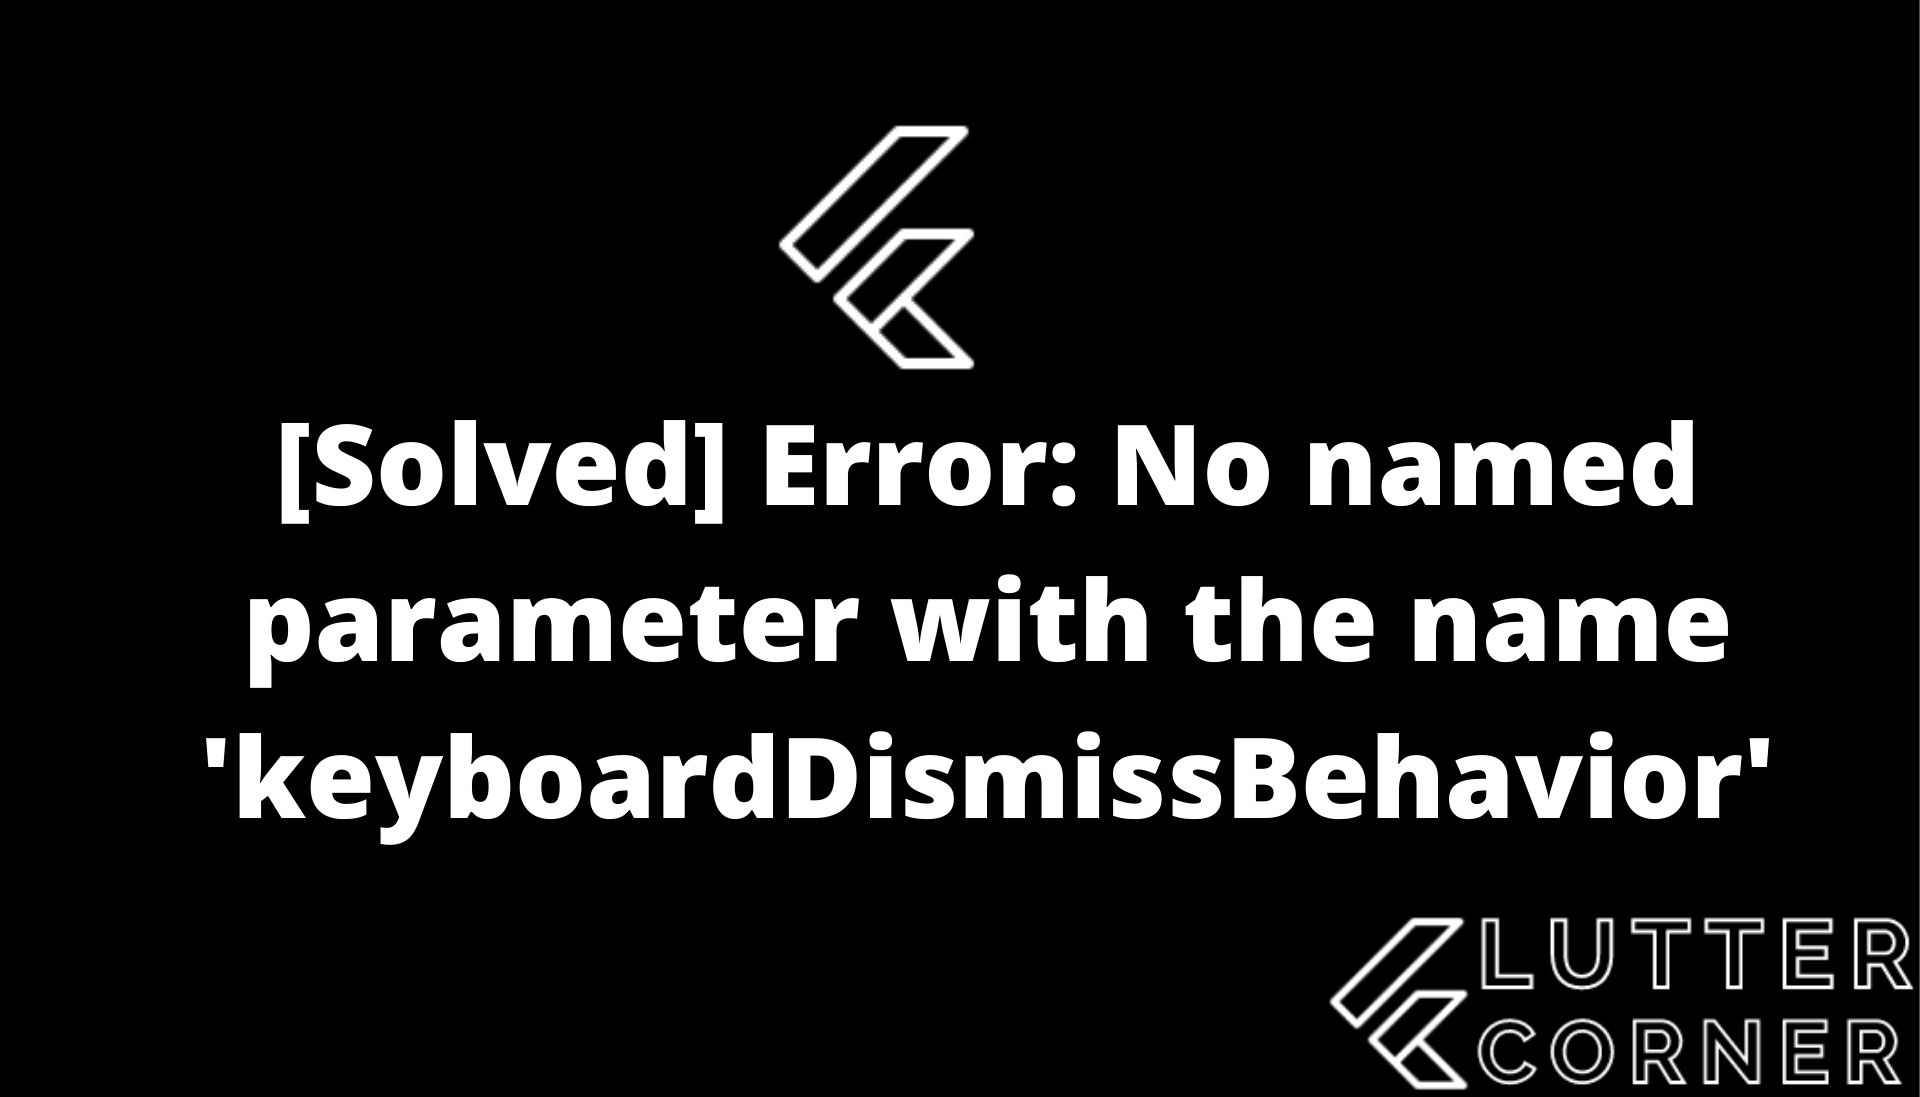 Error: No named parameter with the name 'keyboardDismissBehavior', error no named parameter, parameter with the name keyboarddismissbehavior, No named parameter with the name 'keyboardDismissBehavior'